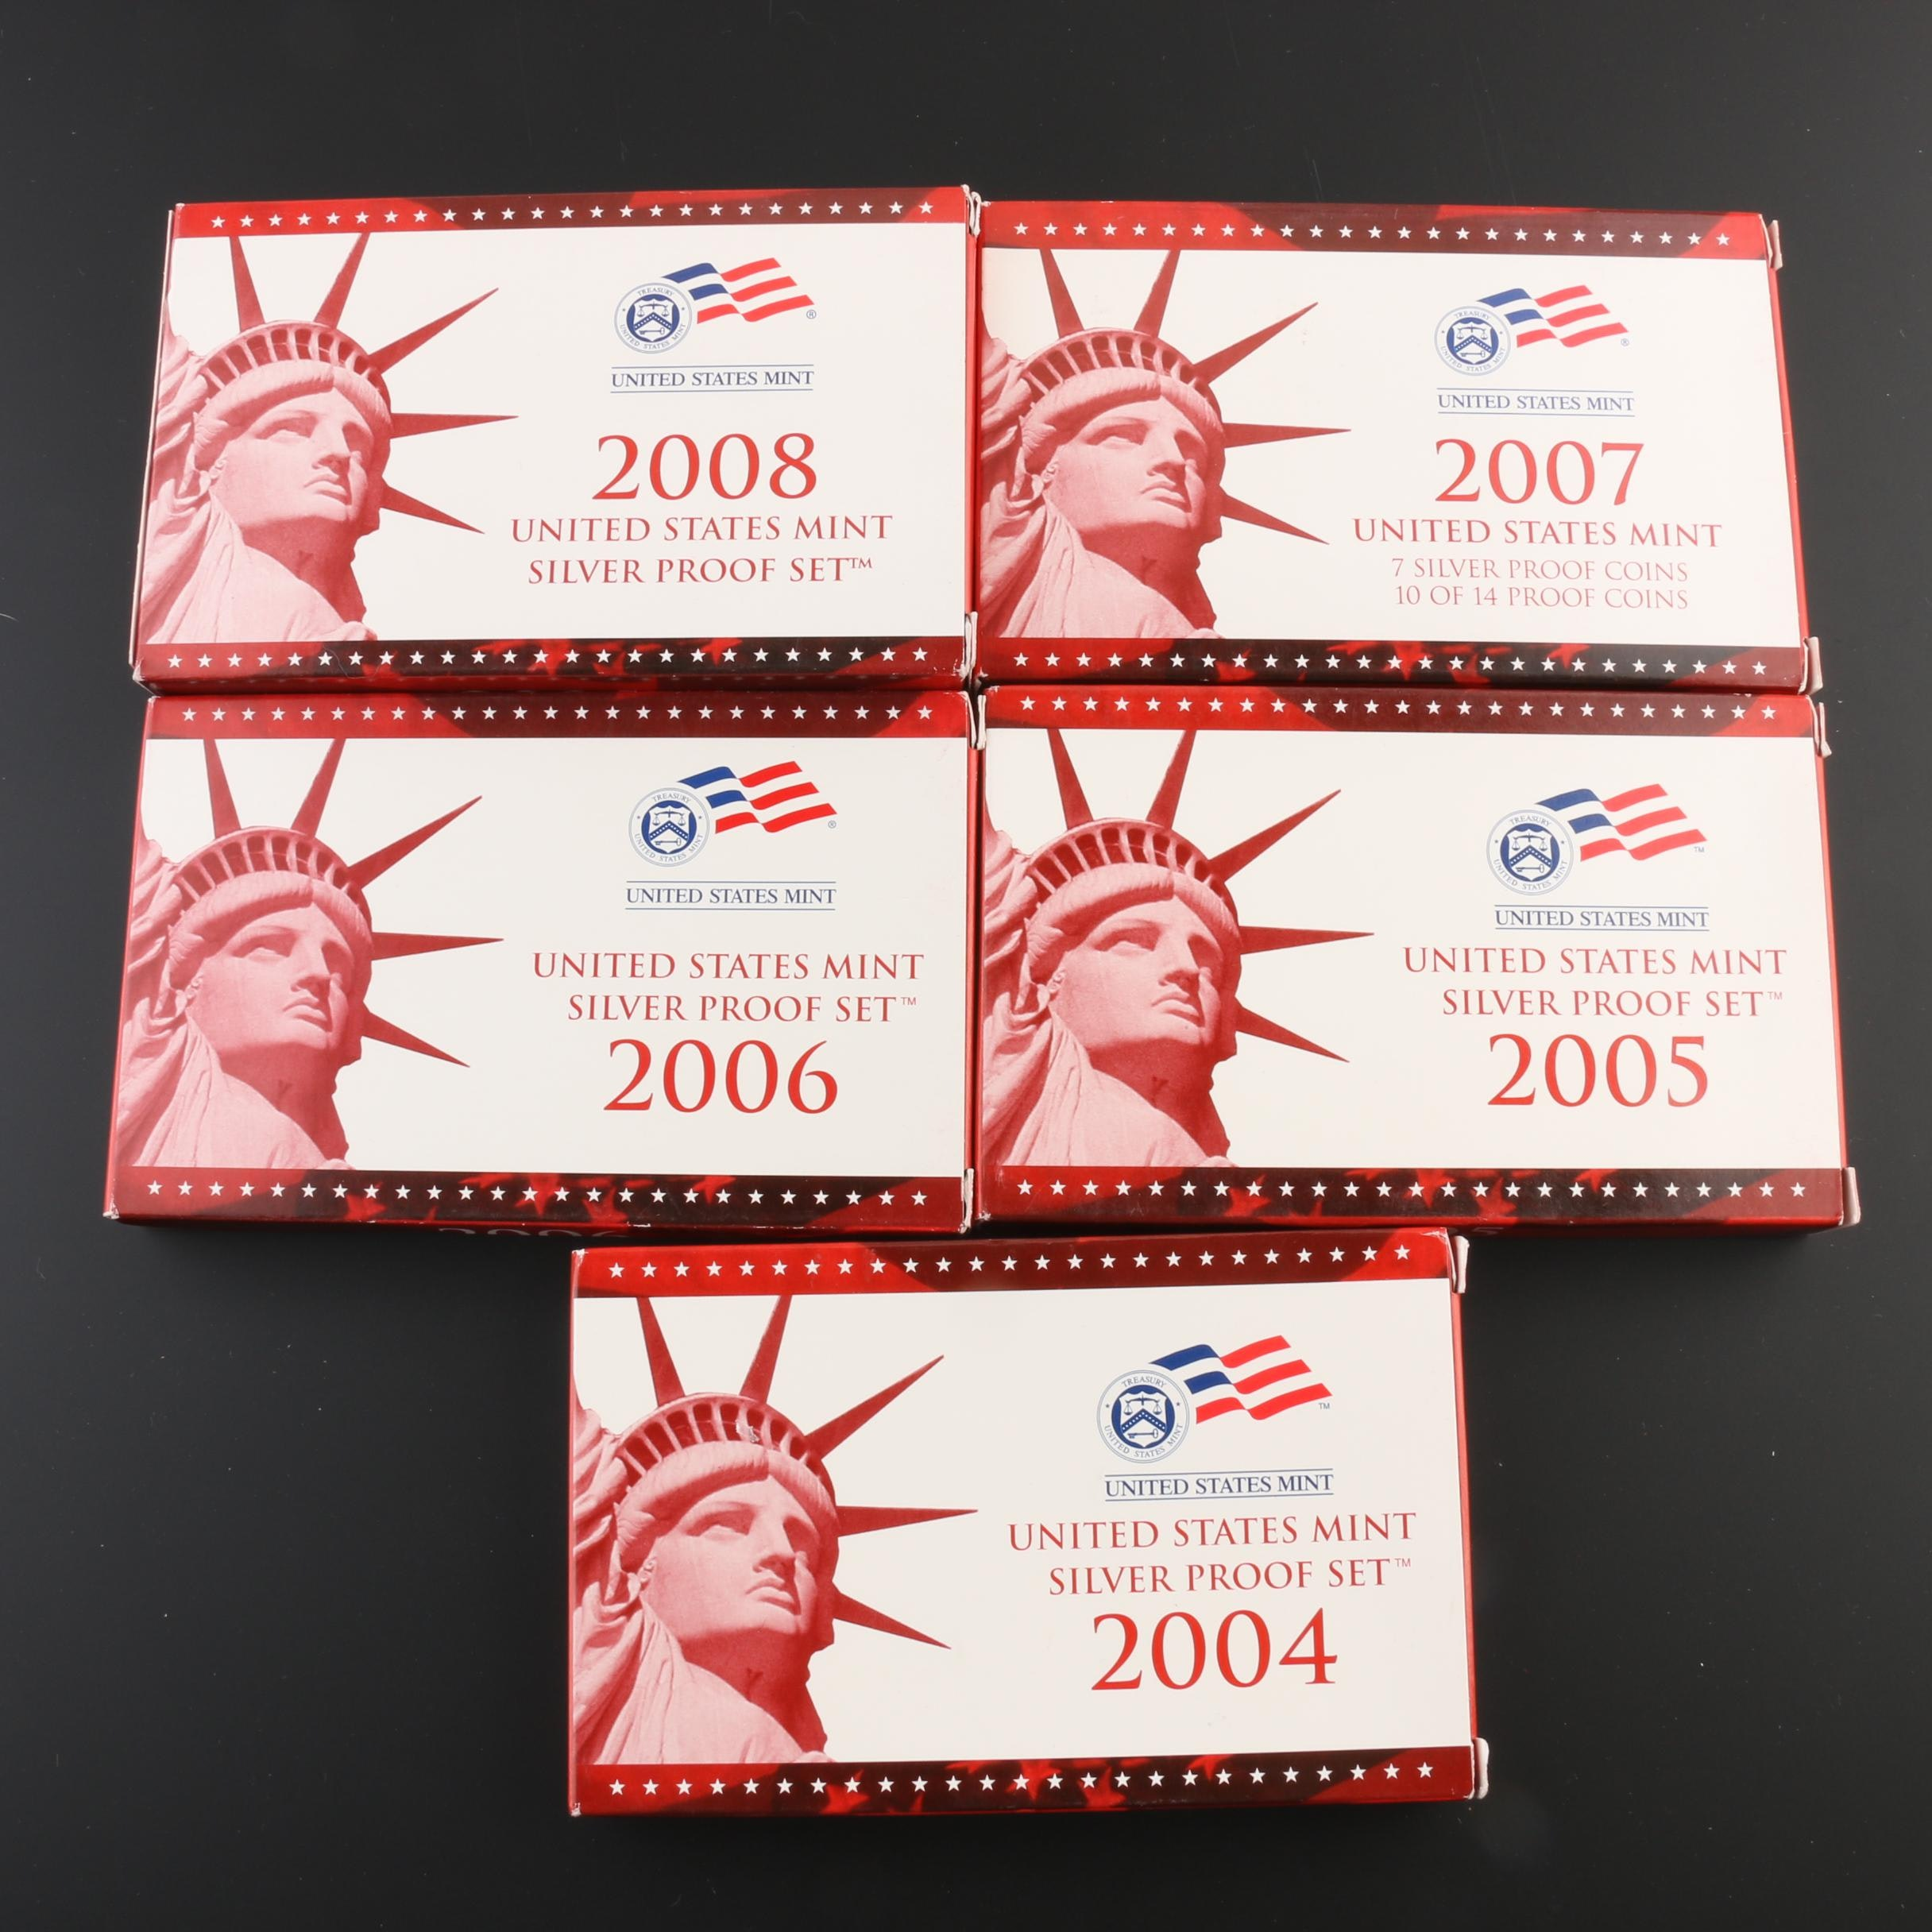 Five U.S. Mint Silver Proof Sets, 2004 to 2008